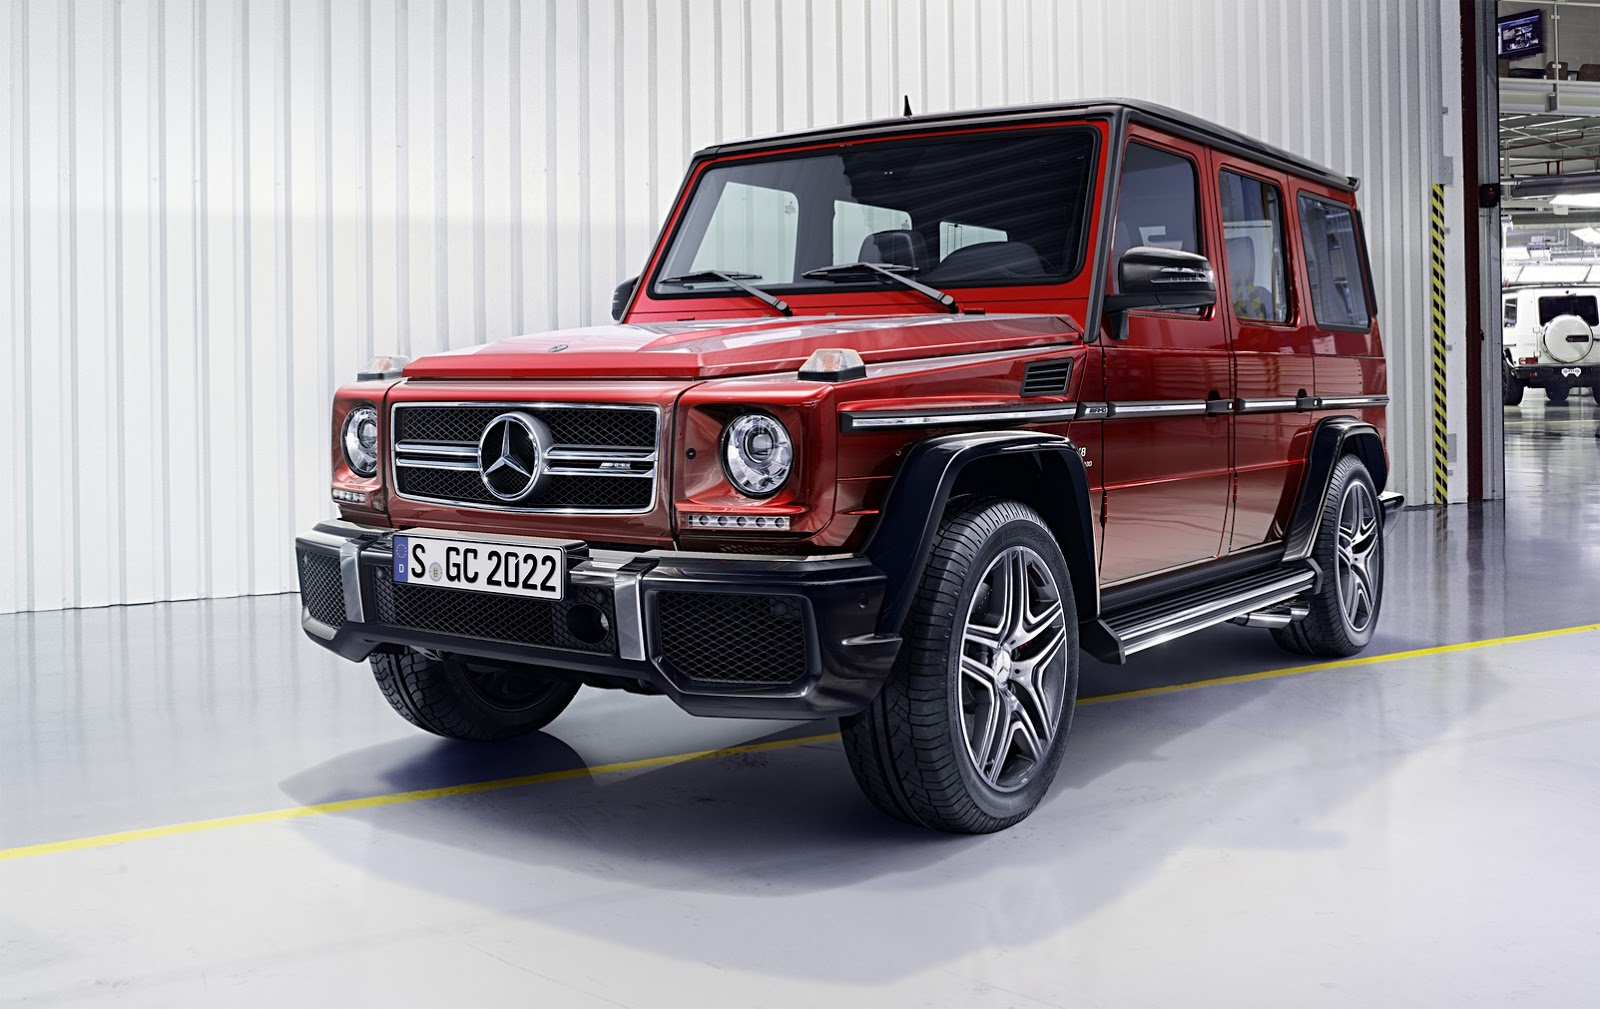 Cars For Sale Jacksonville Fl >> 2016 Mercedes-Benz G-Class Gets New Engines, Suspension And Cosmetic Upgrades | Carscoops